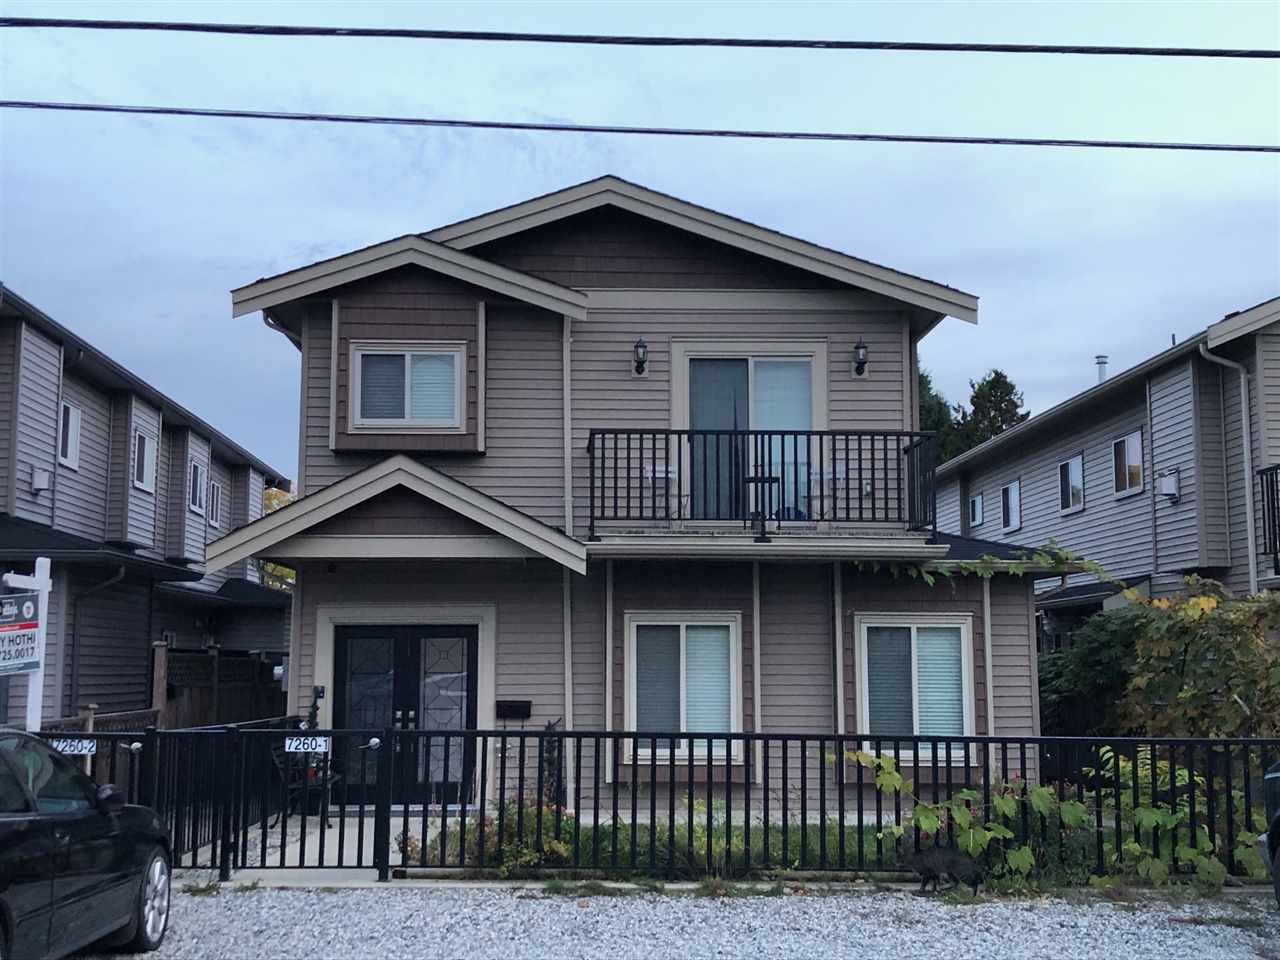 Main Photo: 1 7260 11TH Avenue in Burnaby: Edmonds BE 1/2 Duplex for sale (Burnaby East)  : MLS®# R2557173